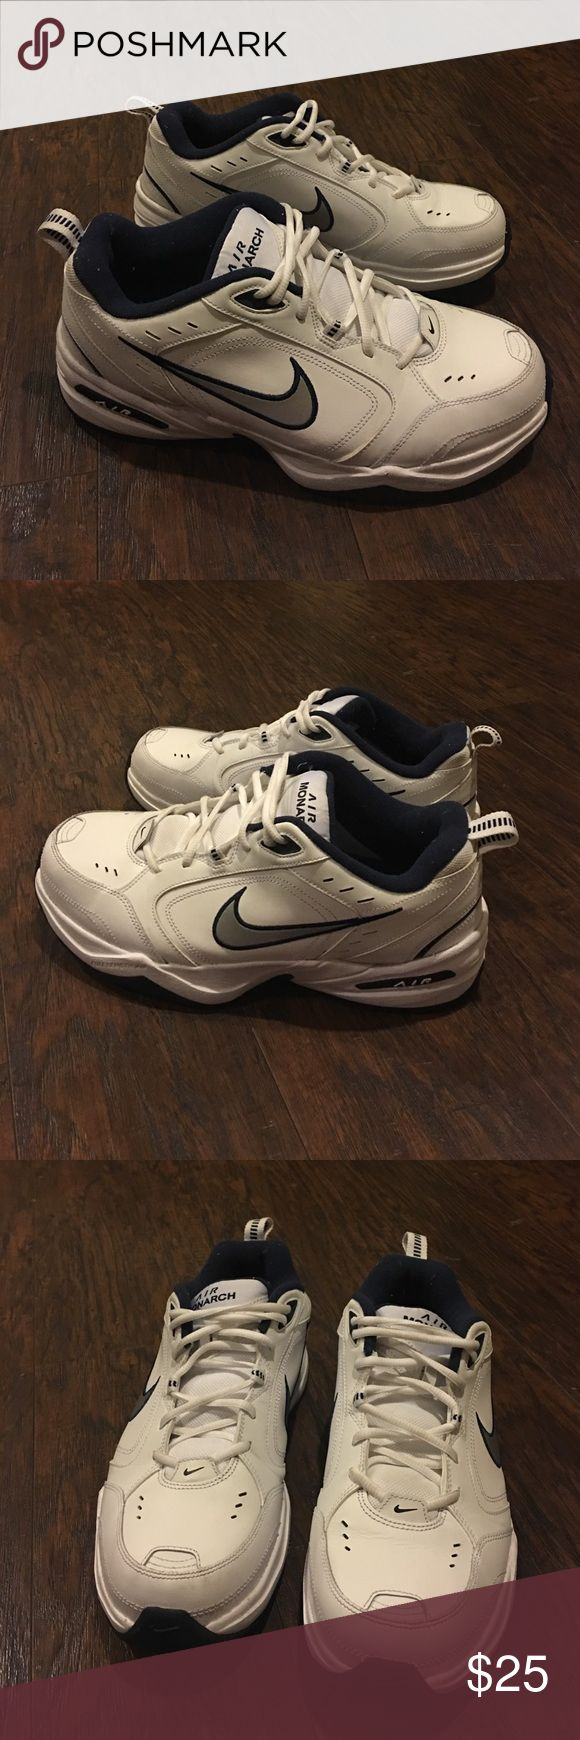 Auth Nike Air Monarch sneakers tennis shoes 11 Authentic Nike Air Monarch sneakers tennis shoes 11 good condition wore a few times only new gel insoles added Nike Shoes Athletic Shoes